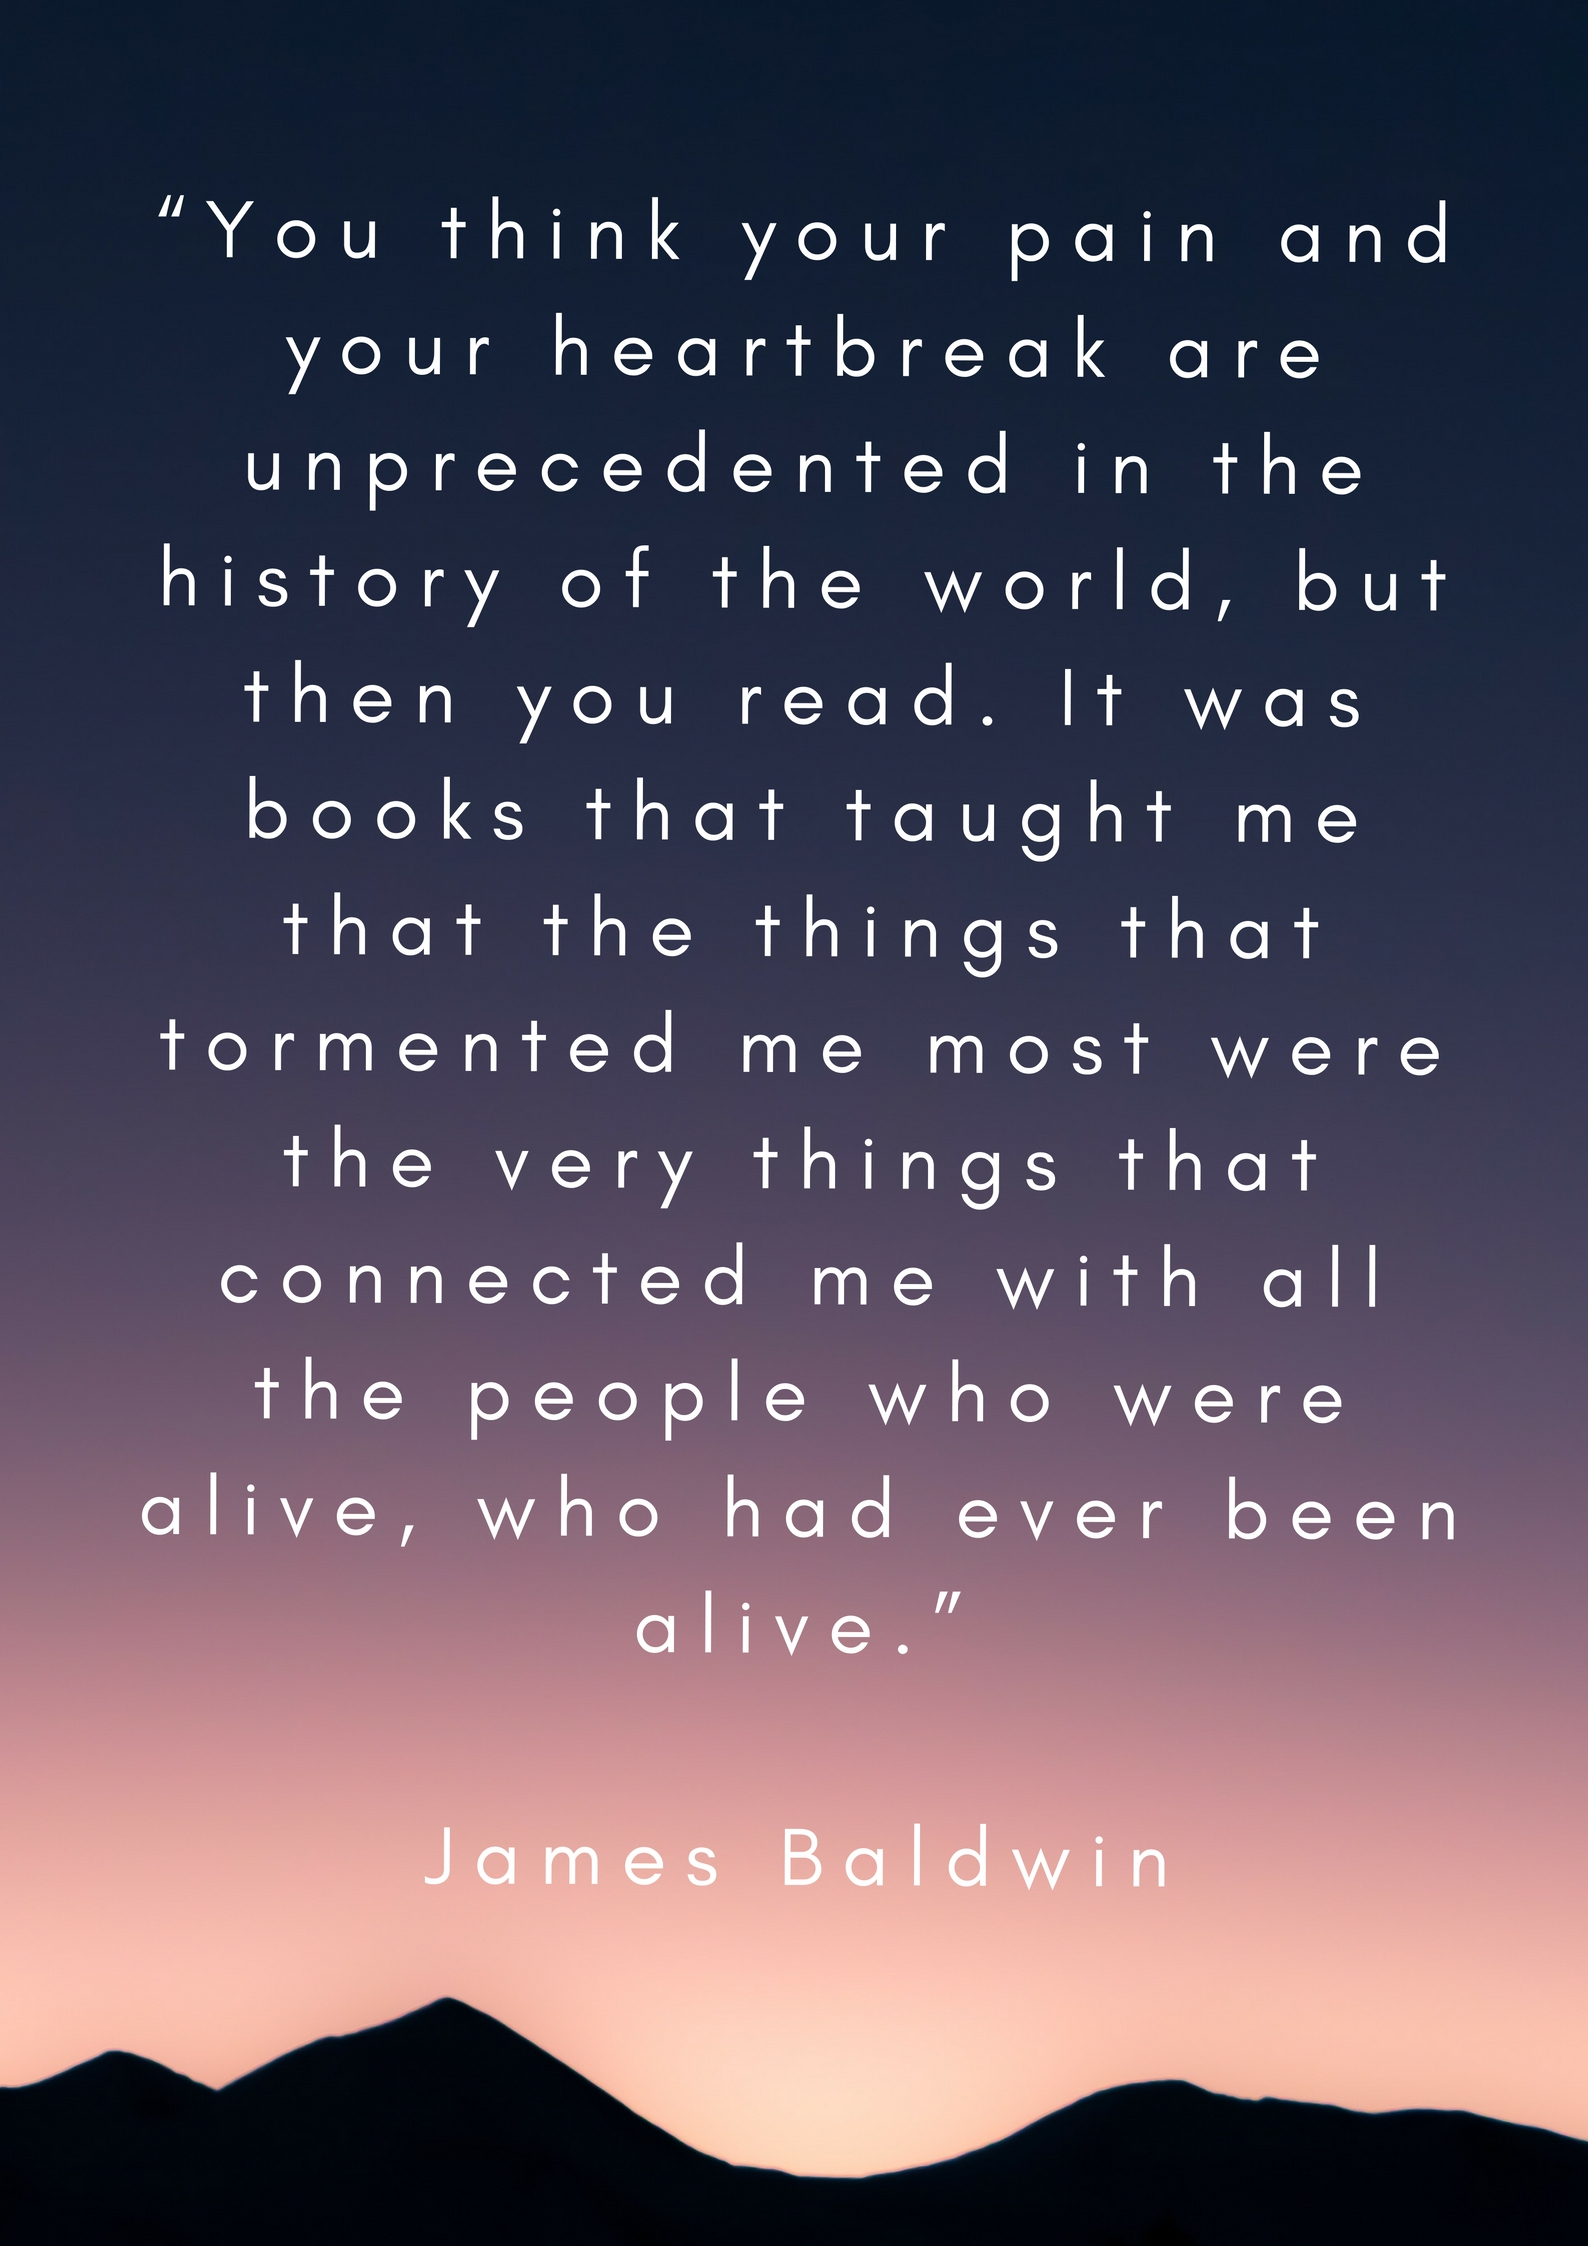 """""""You think your pain and your heartbreak are unprecedented in the history of the world, but then you read. It was books that taught me that the things that tormented me most were the v"""